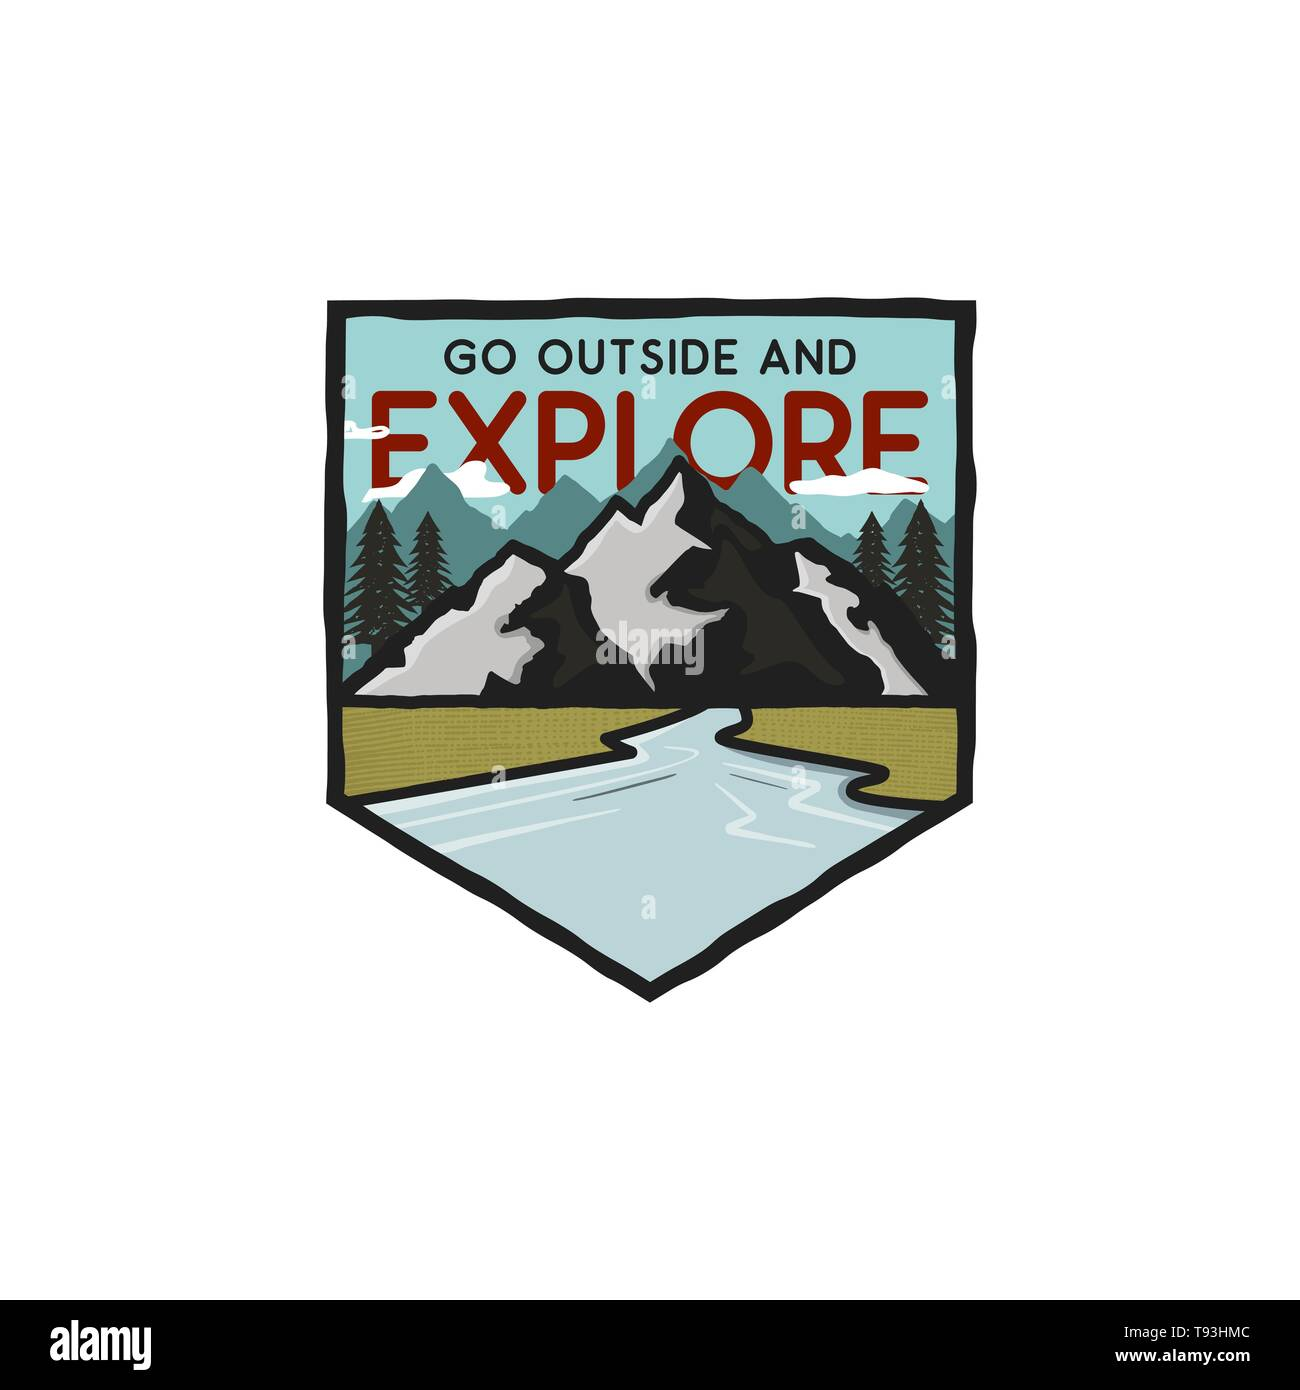 Vintage hand drawn adventure logo with mountains, river and quote - Go outside and explore. Old style outdoors adventure patch. Retro emblem graphic.  - Stock Image